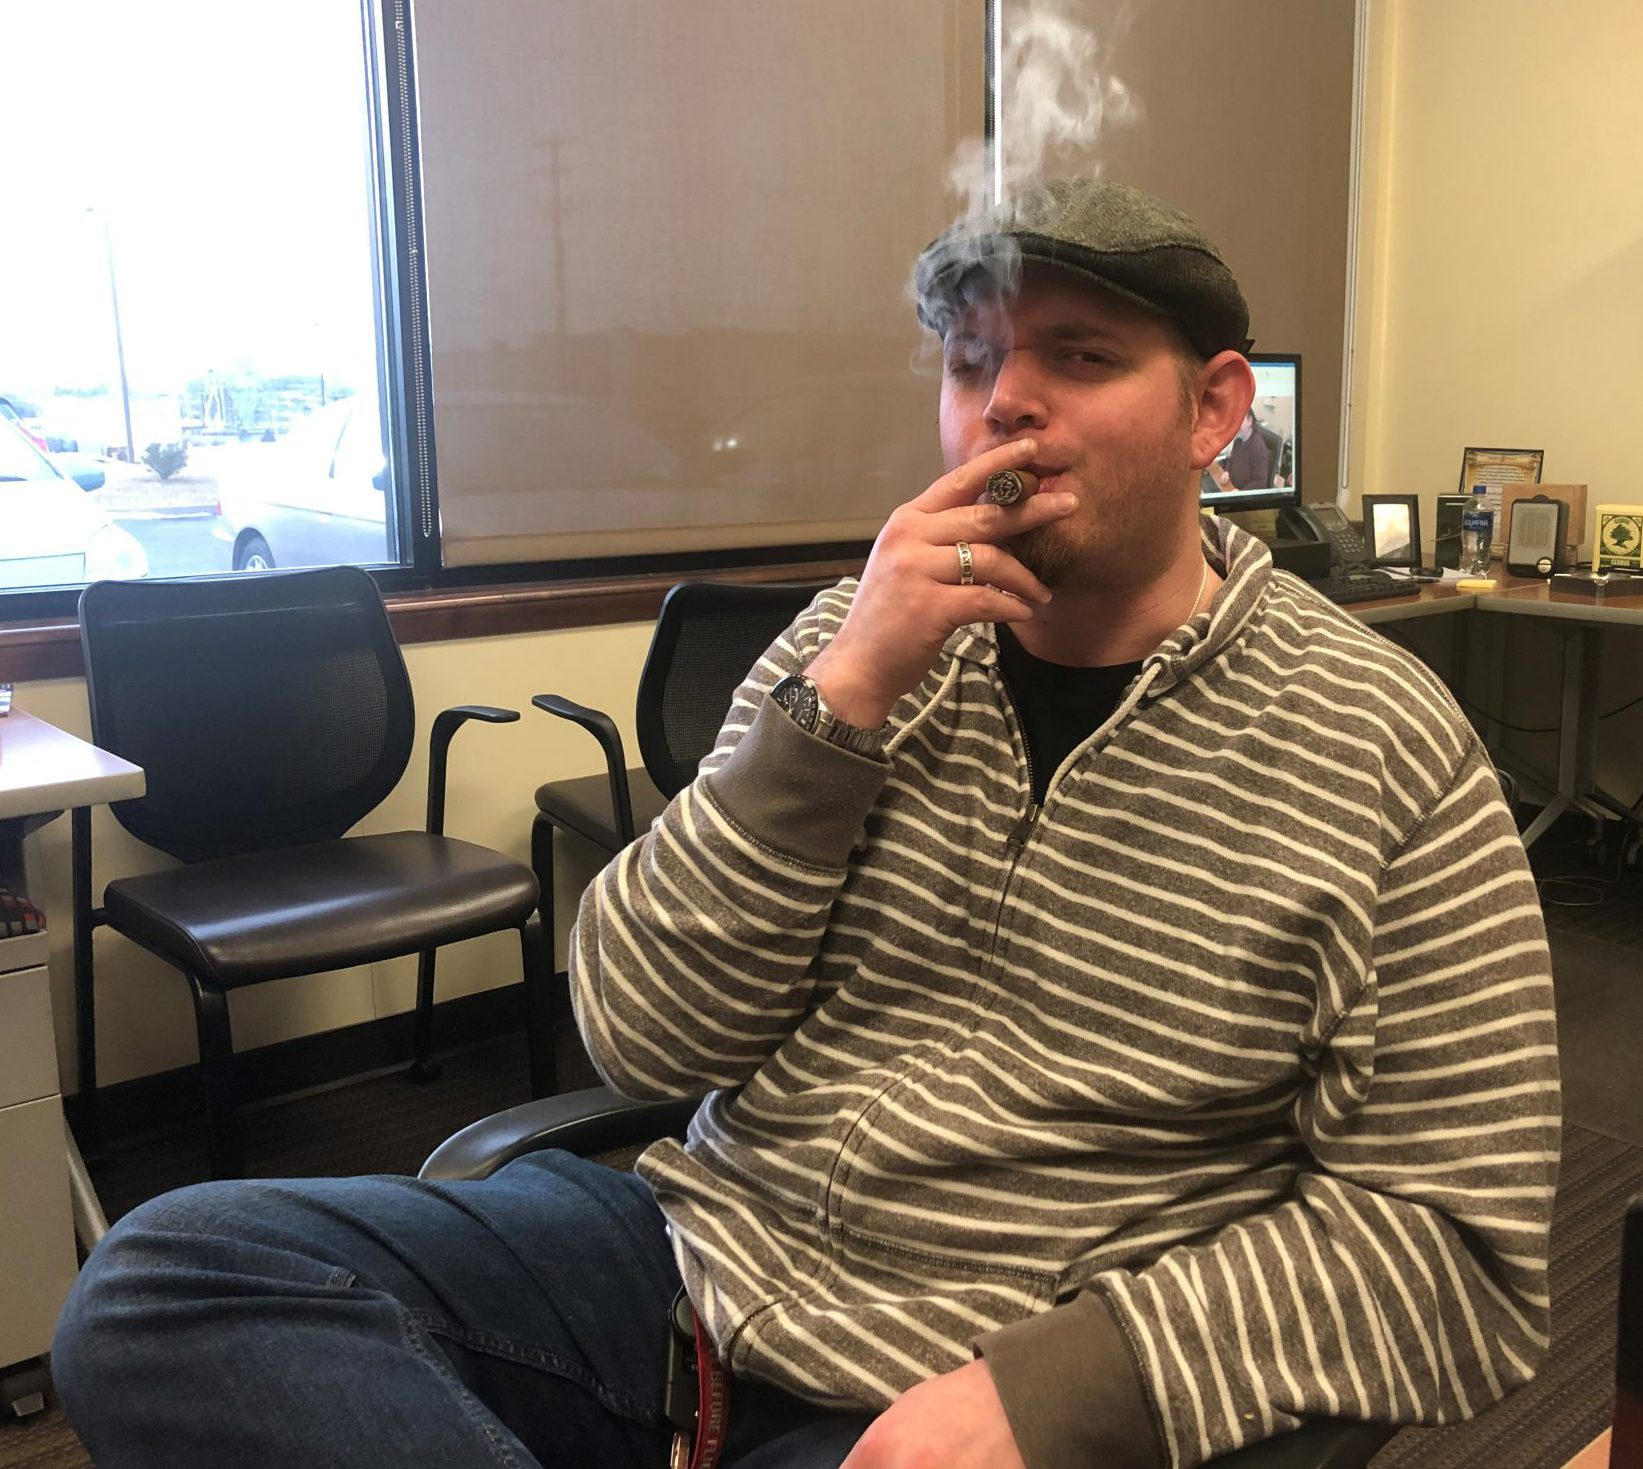 reader's choice top cigars for St. Patrick's Day 2019 Black Works Studio Boondock Saint cigars Jared Gulick at Famous Smoke Shop